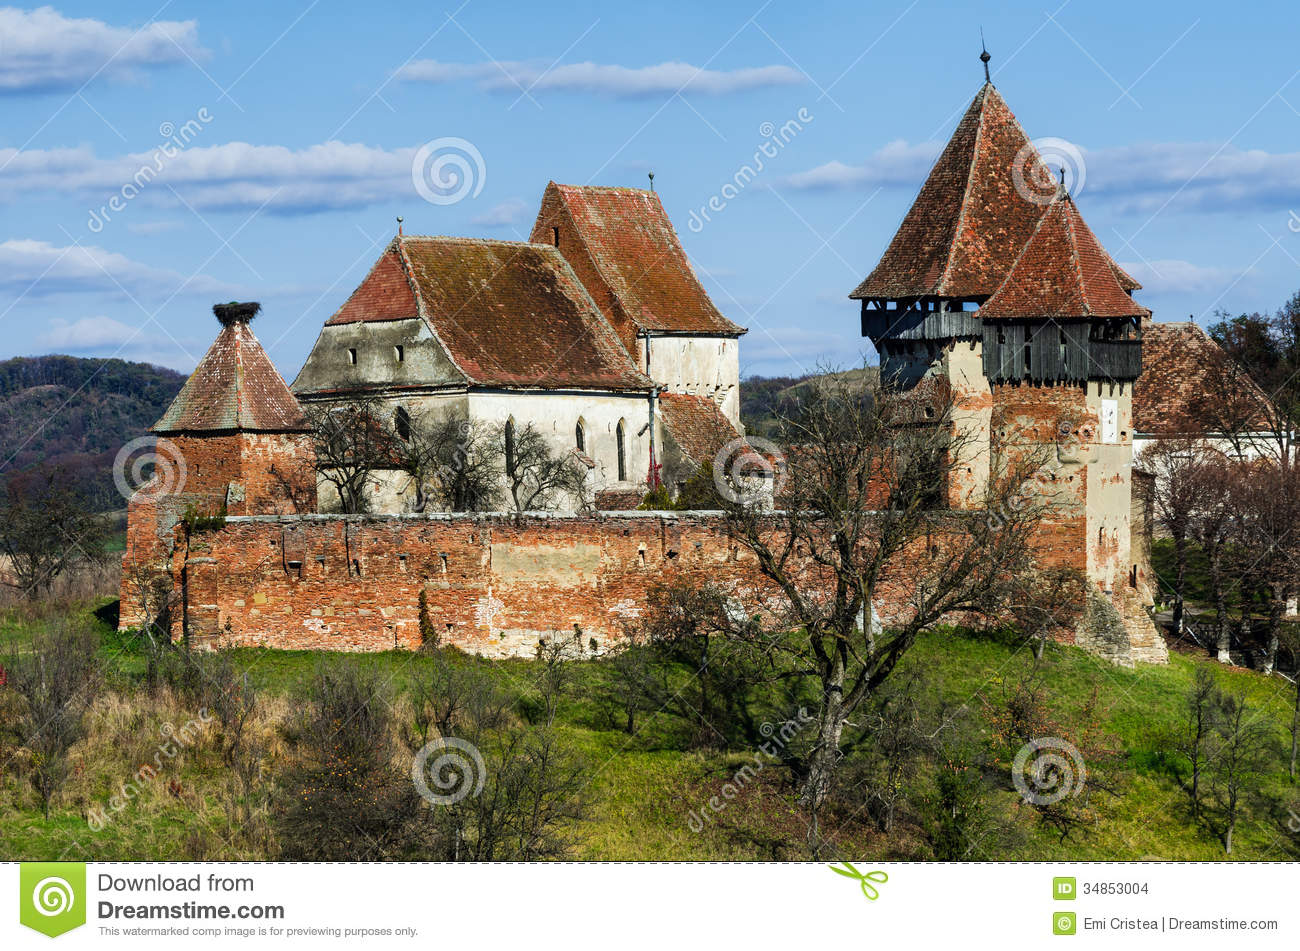 Tower and walls of fortified church alma vii transylvania roma stock images image 34853004 - Saxon style houses in transylvania ...